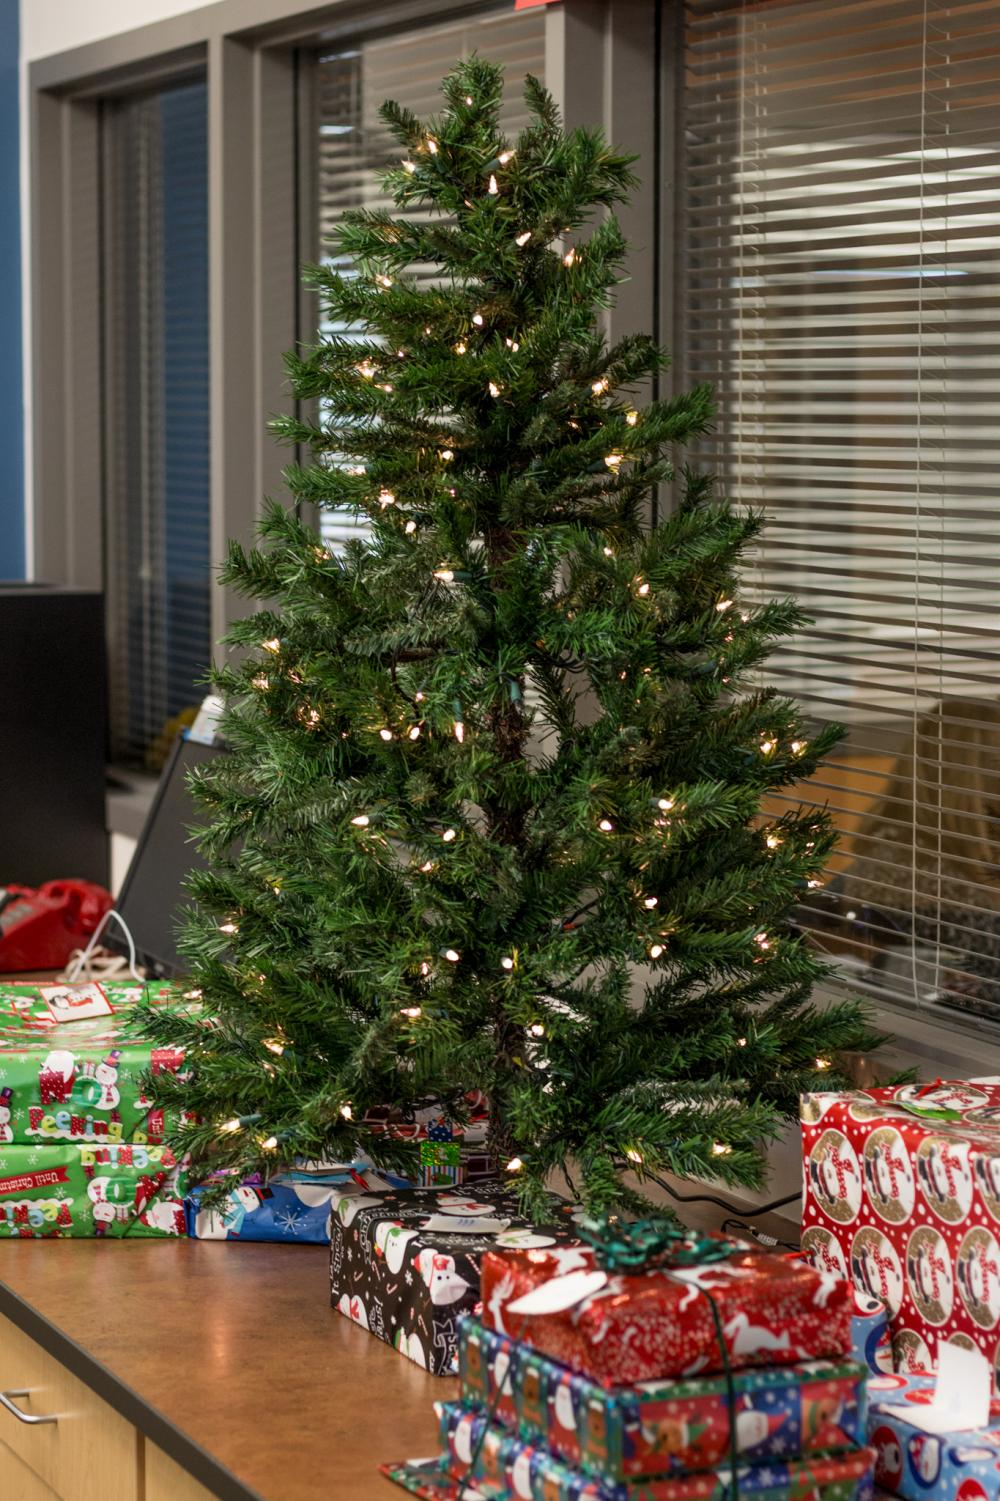 Present lie underneath the Giving Tree in the office.